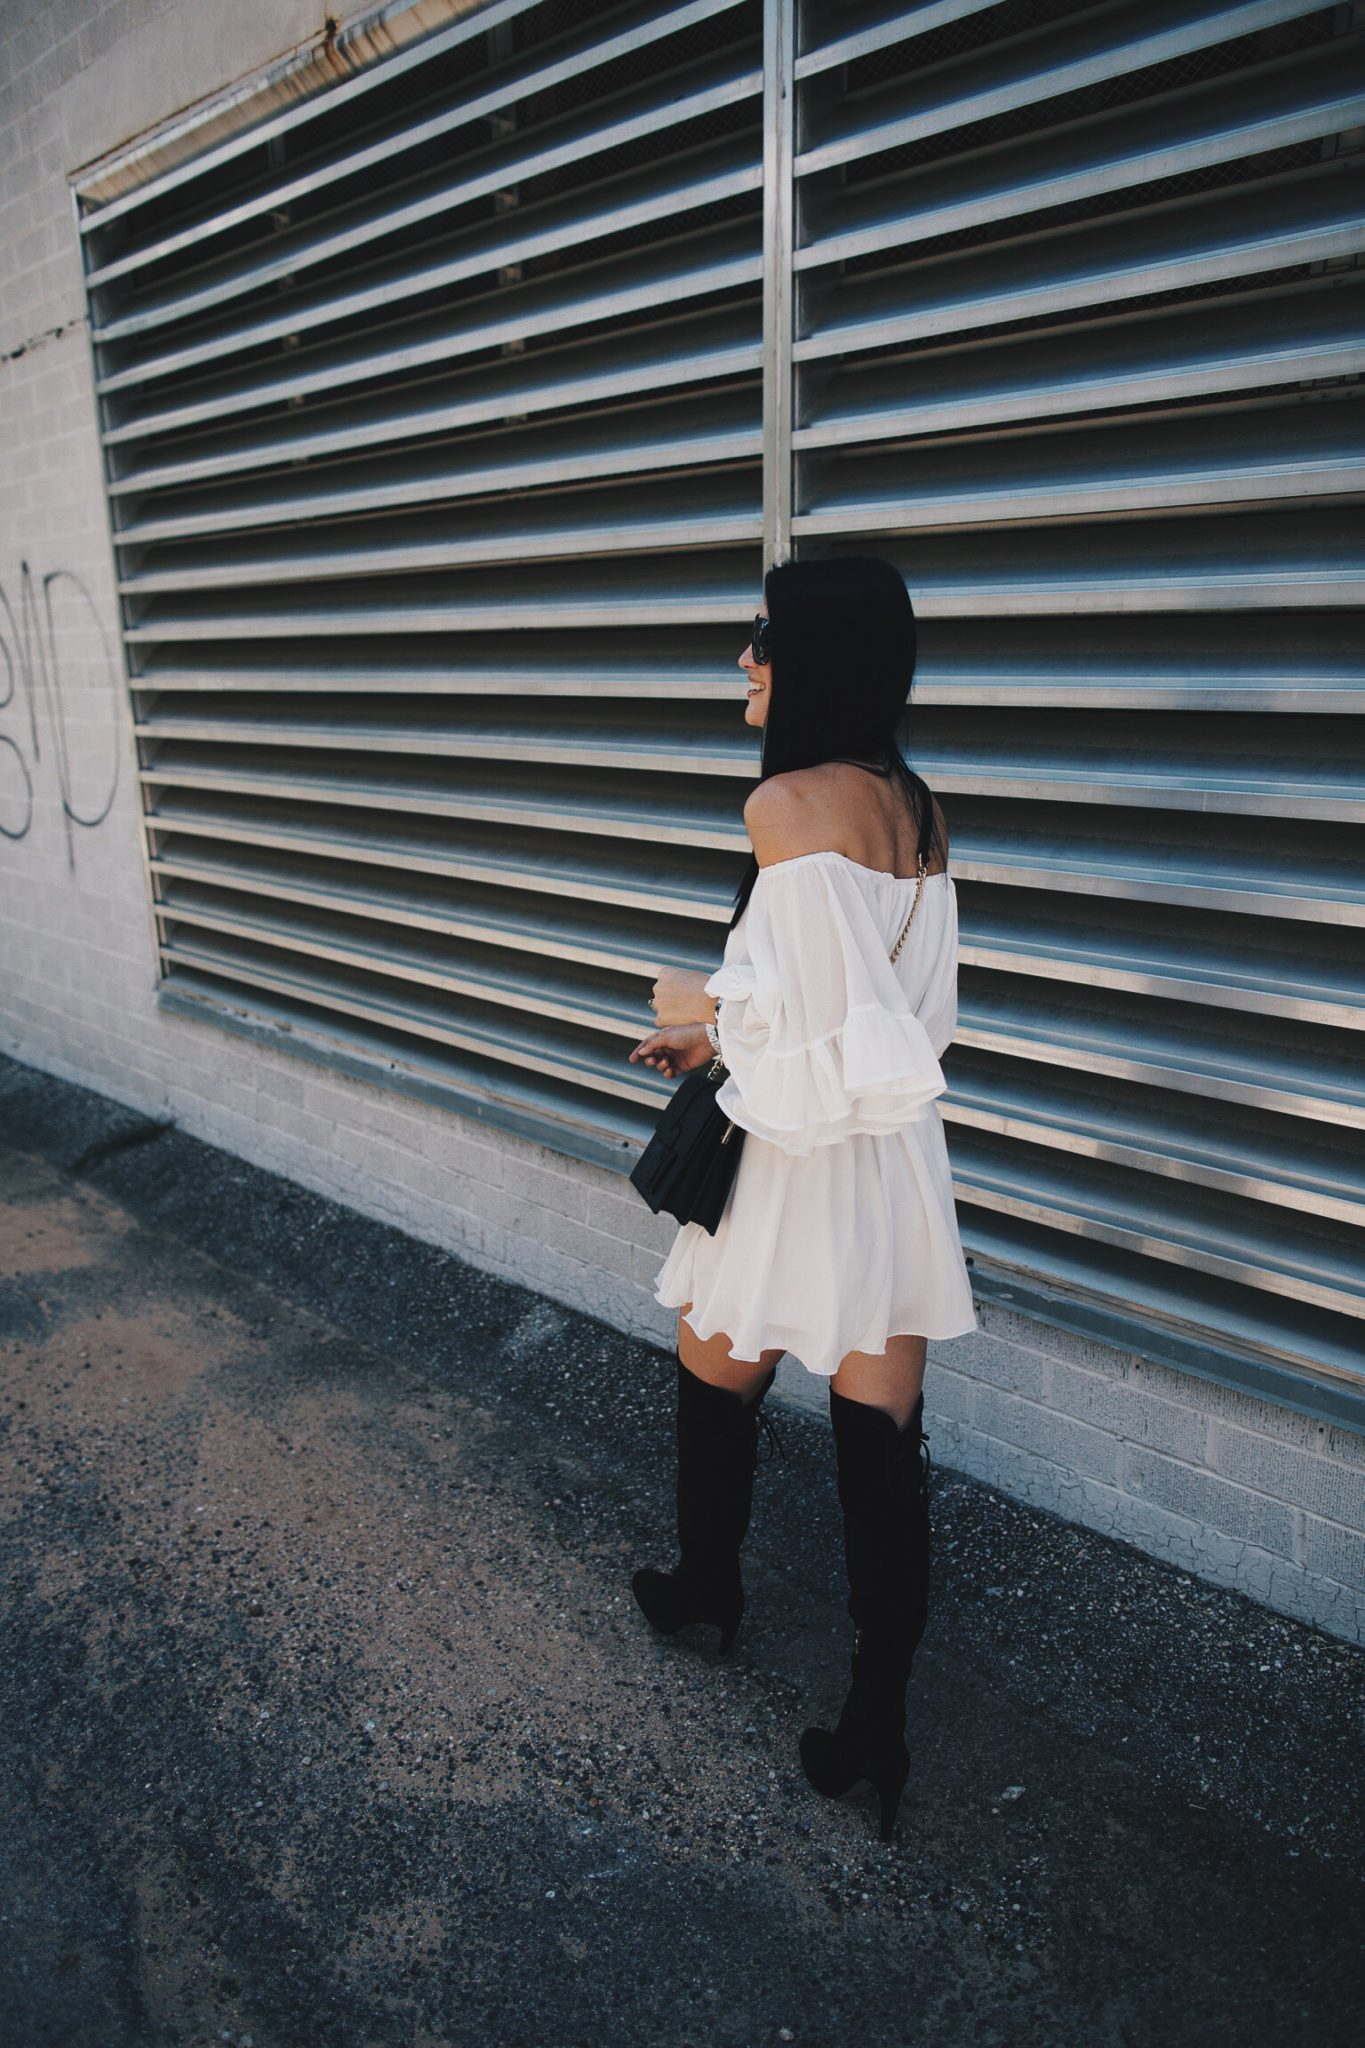 White Romper and Over the Knee Boots | how to style a romper | how to wear a romper | how to style OTK boots | how to wear OTK boots | summer fashion tips | summer outfit ideas | summer style tips | what to wear for summer | warm weather fashion | fashion for summer | style tips for summer | outfit ideas for summer || Dressed to Kill